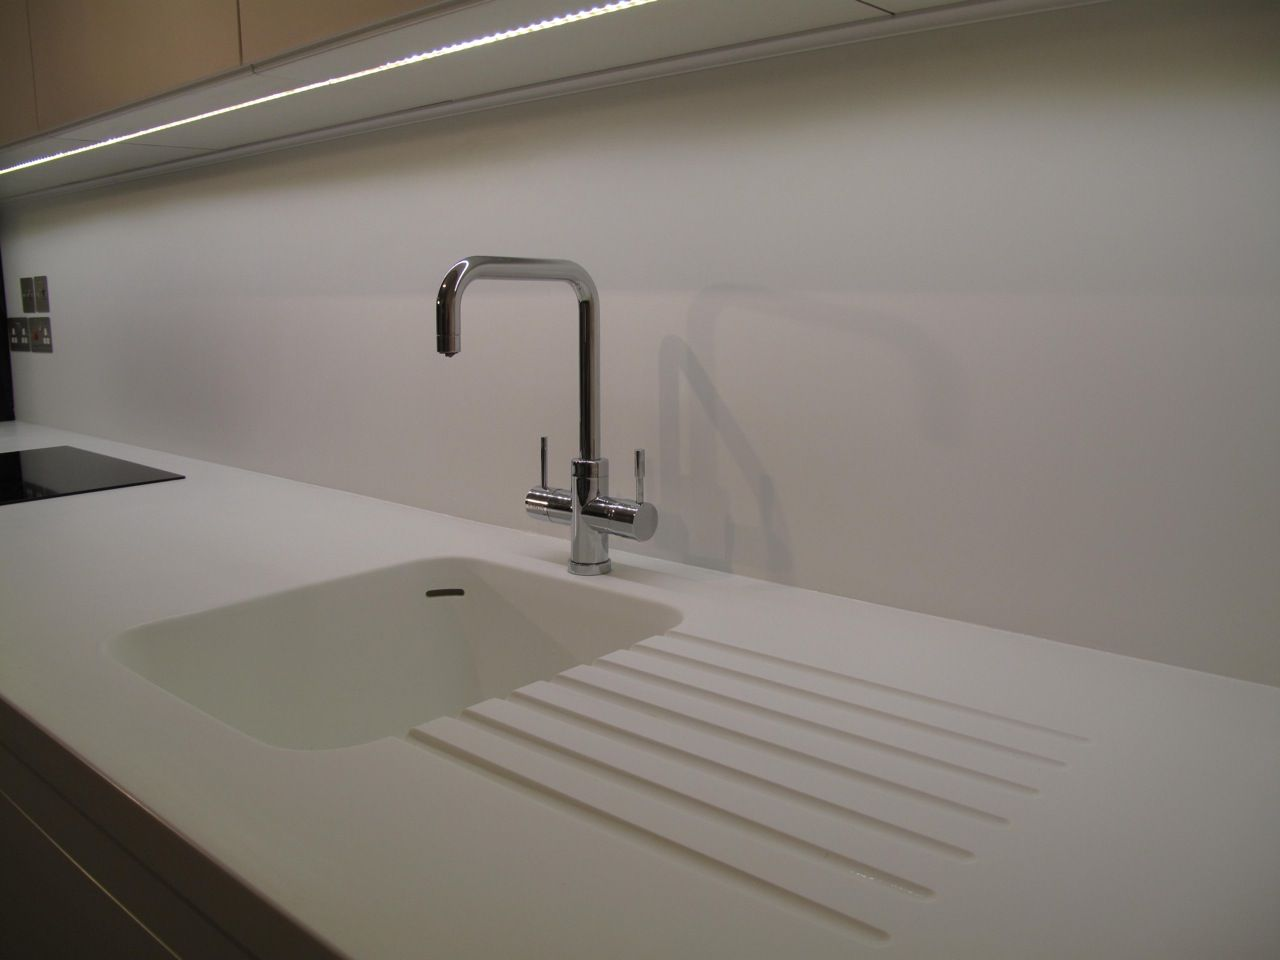 Tech 700bcgiar Gia Contemporary Led Bathroom Lighting: Corian Sink And Led Lighting Strip With Full Height Corian